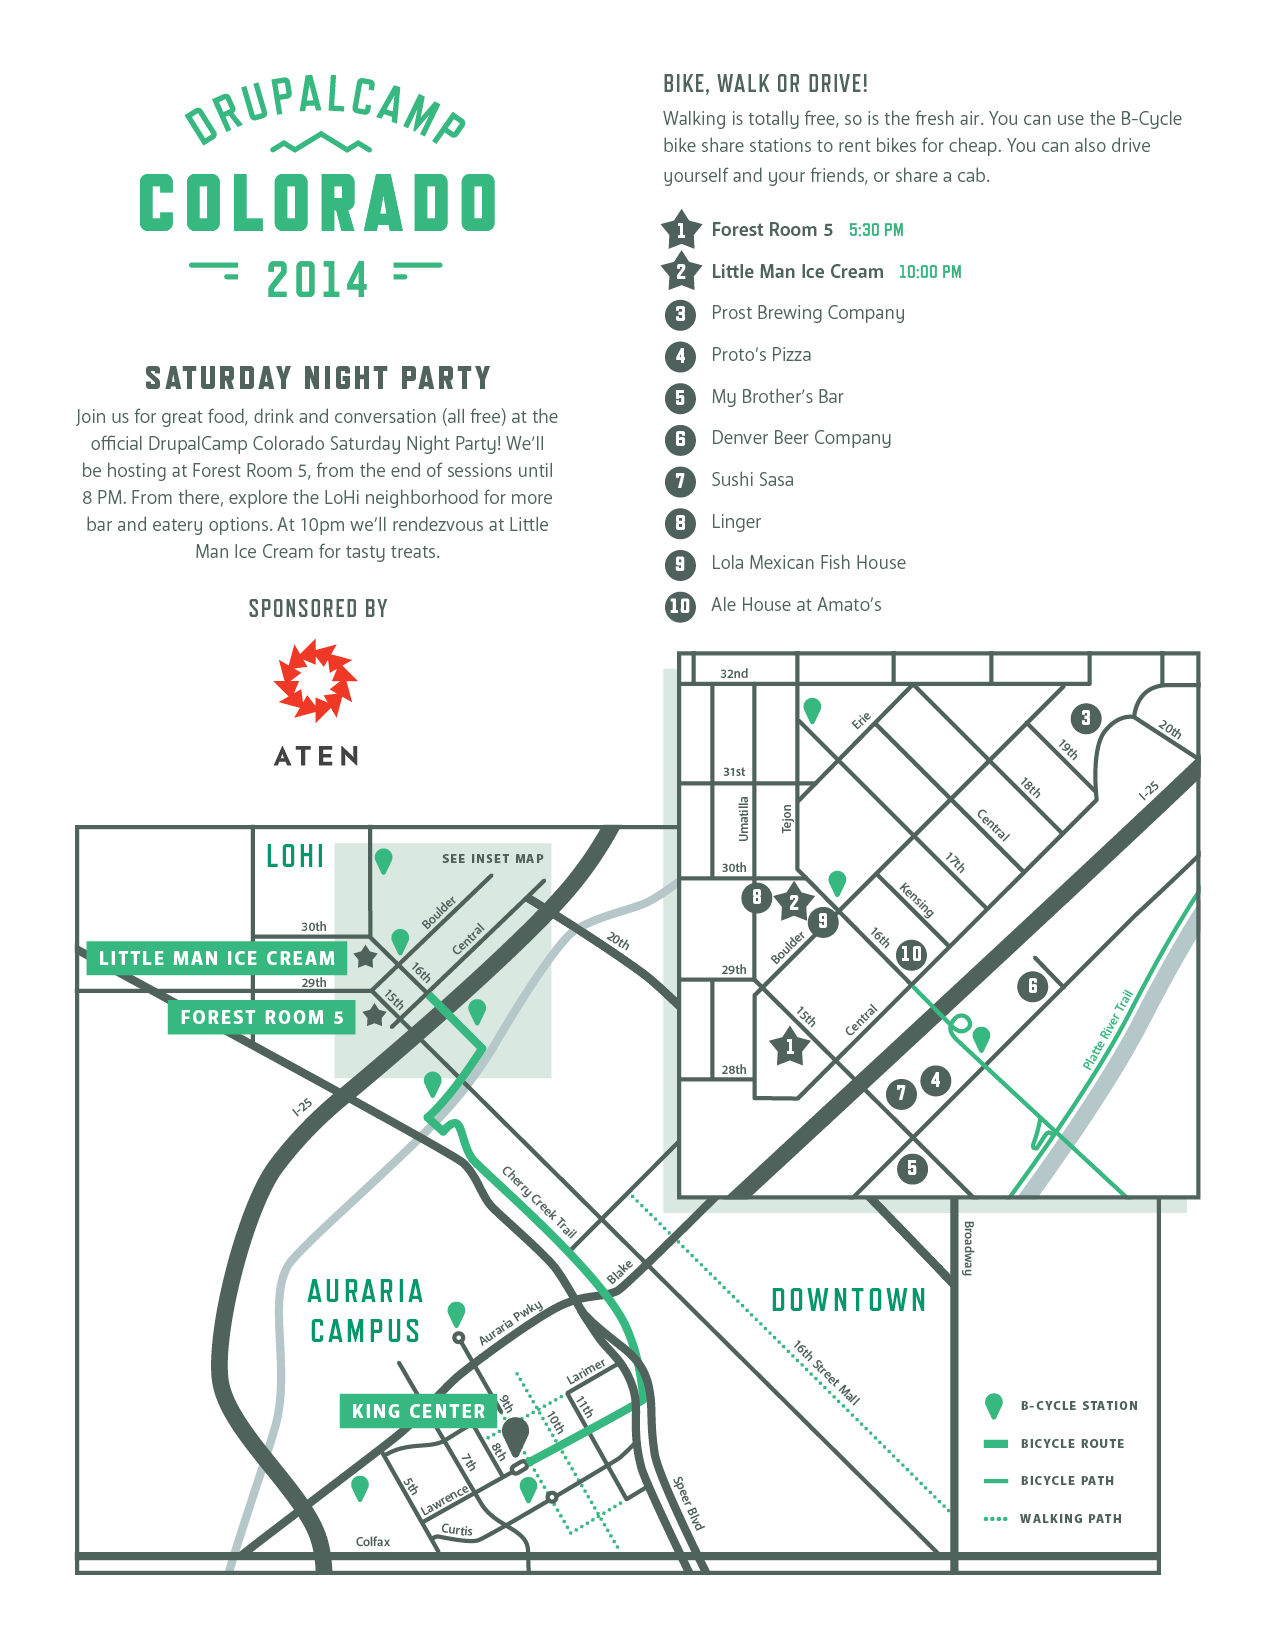 DCCO'14 Saturday Night Party Map